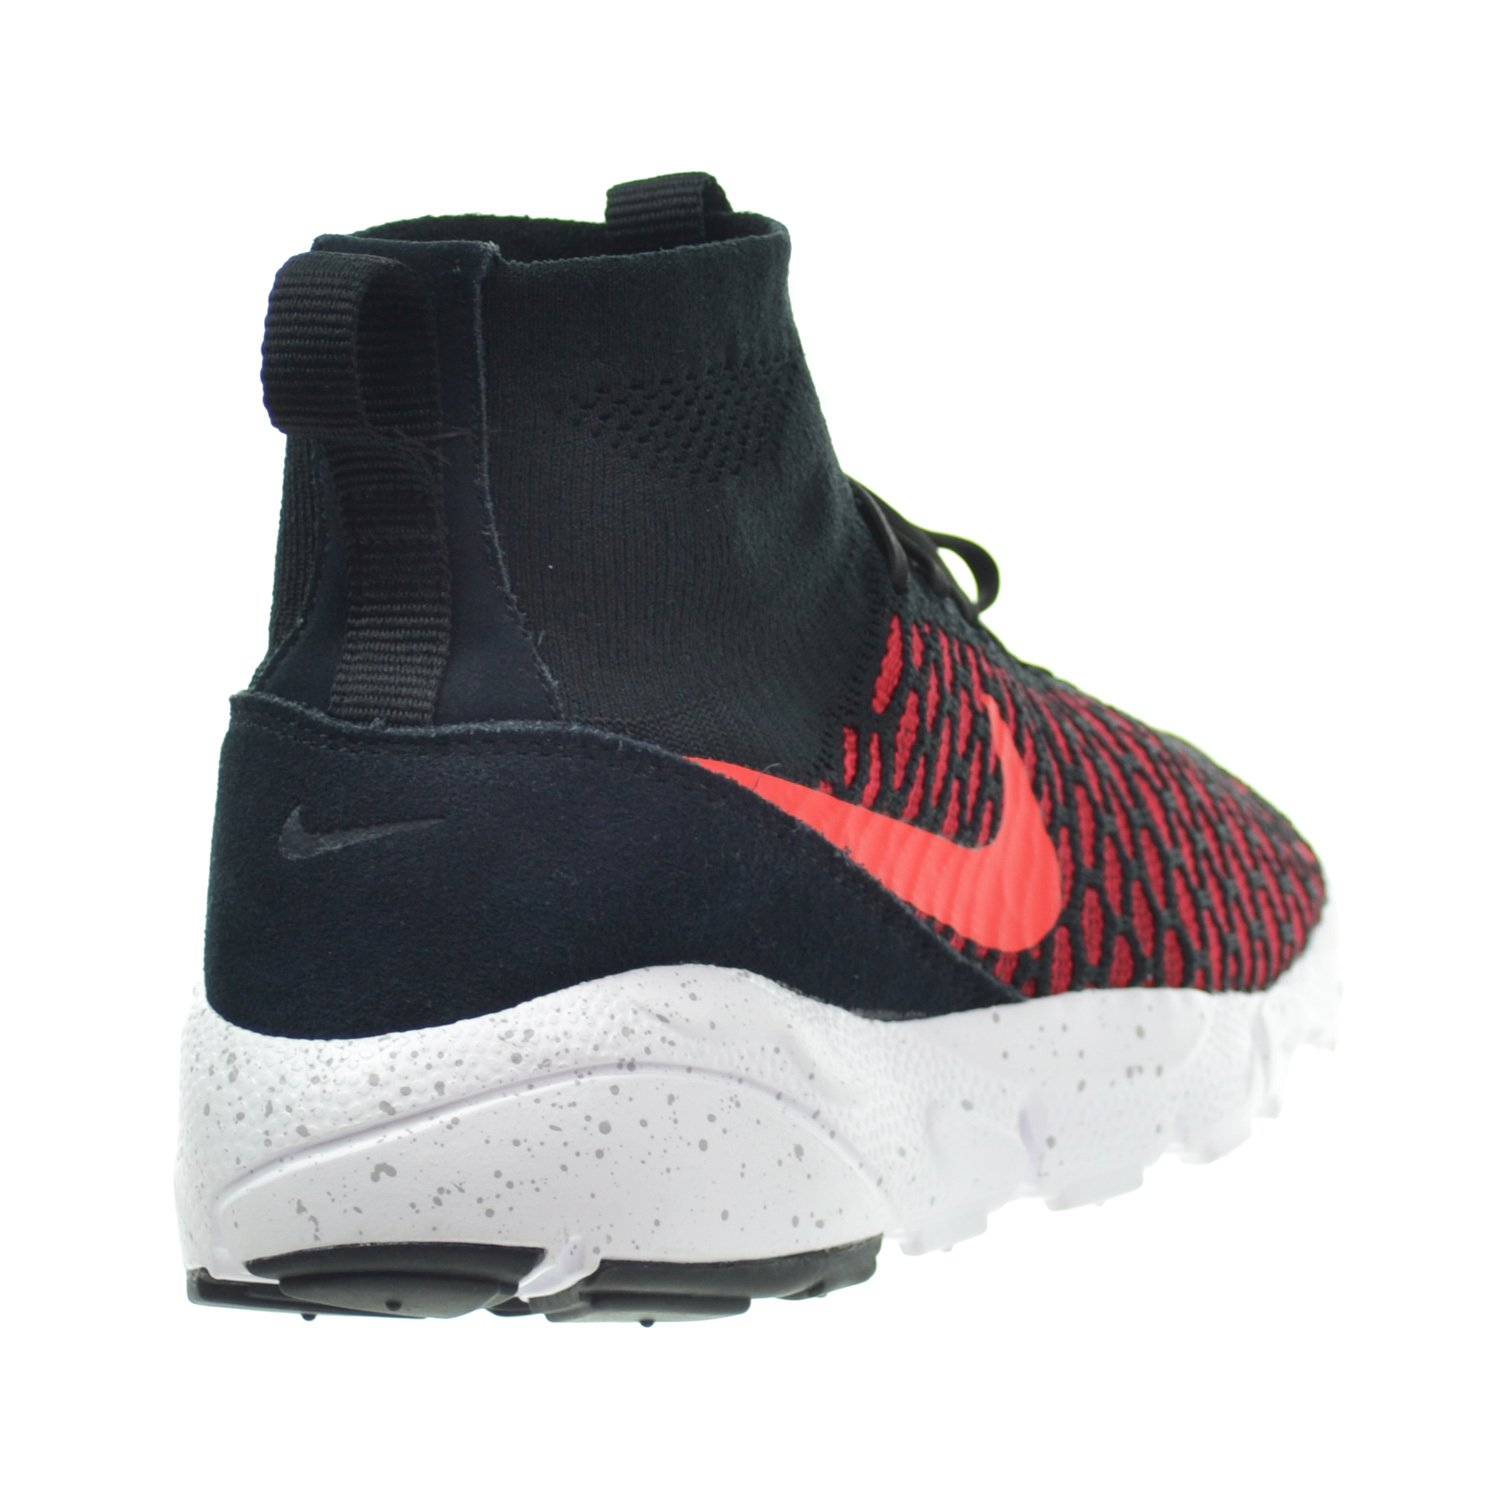 buy online 45ba8 41a2e Amazon.com   Nike Air Footscape Magista Flyknit Men s Shoes Black Bright  Crimson Gym Red Cool Grey 816560-002 (13 D(M) US)   Soccer